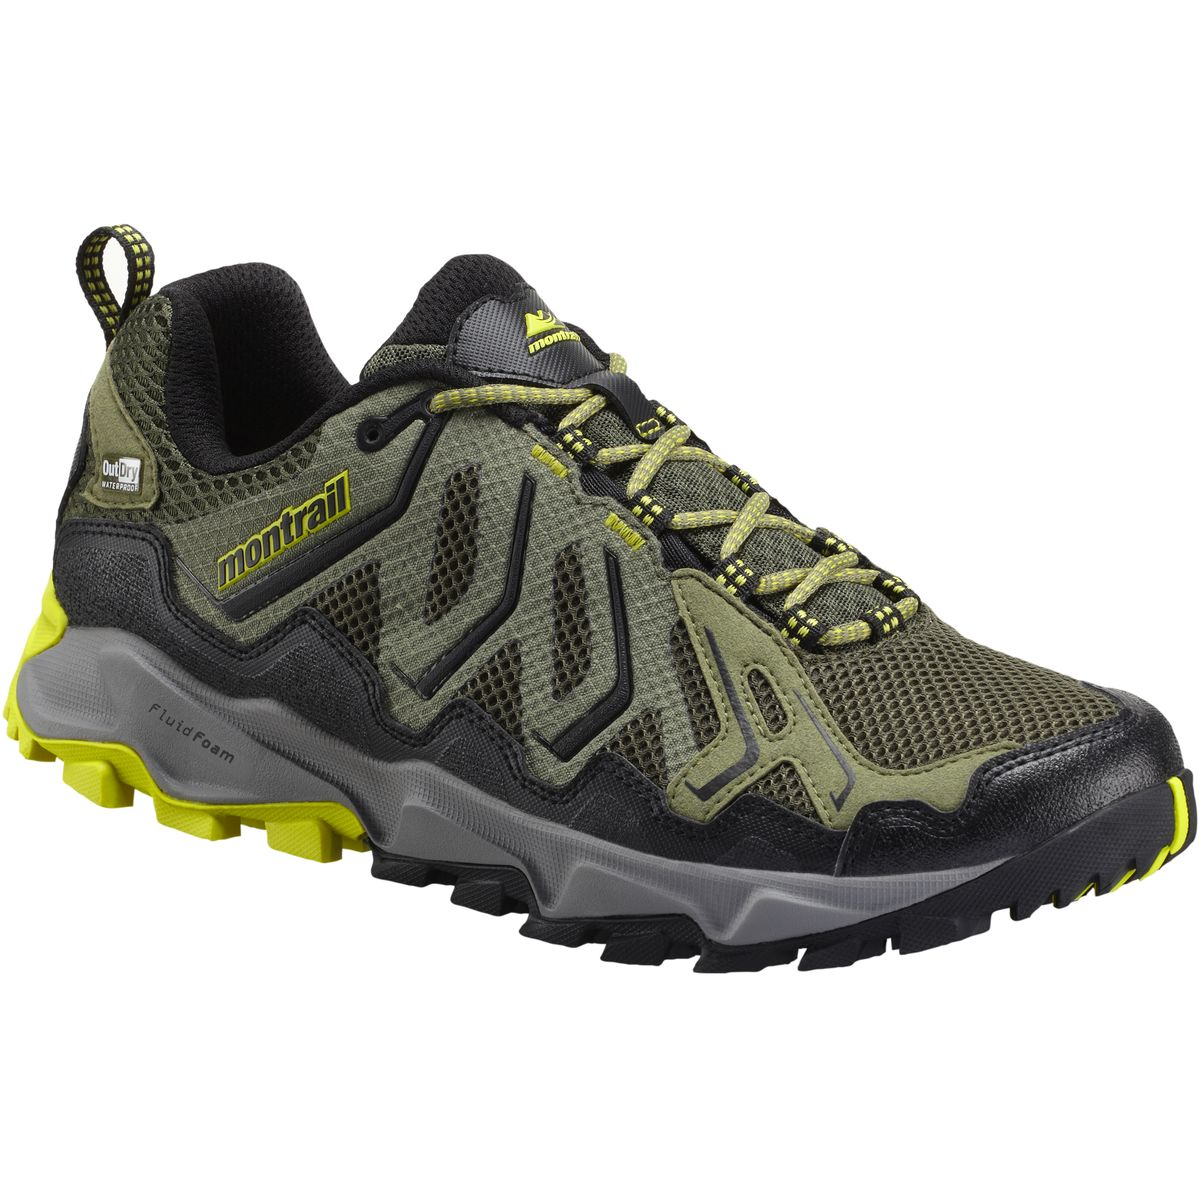 Montrail Trans Alps Trail Running Shoes